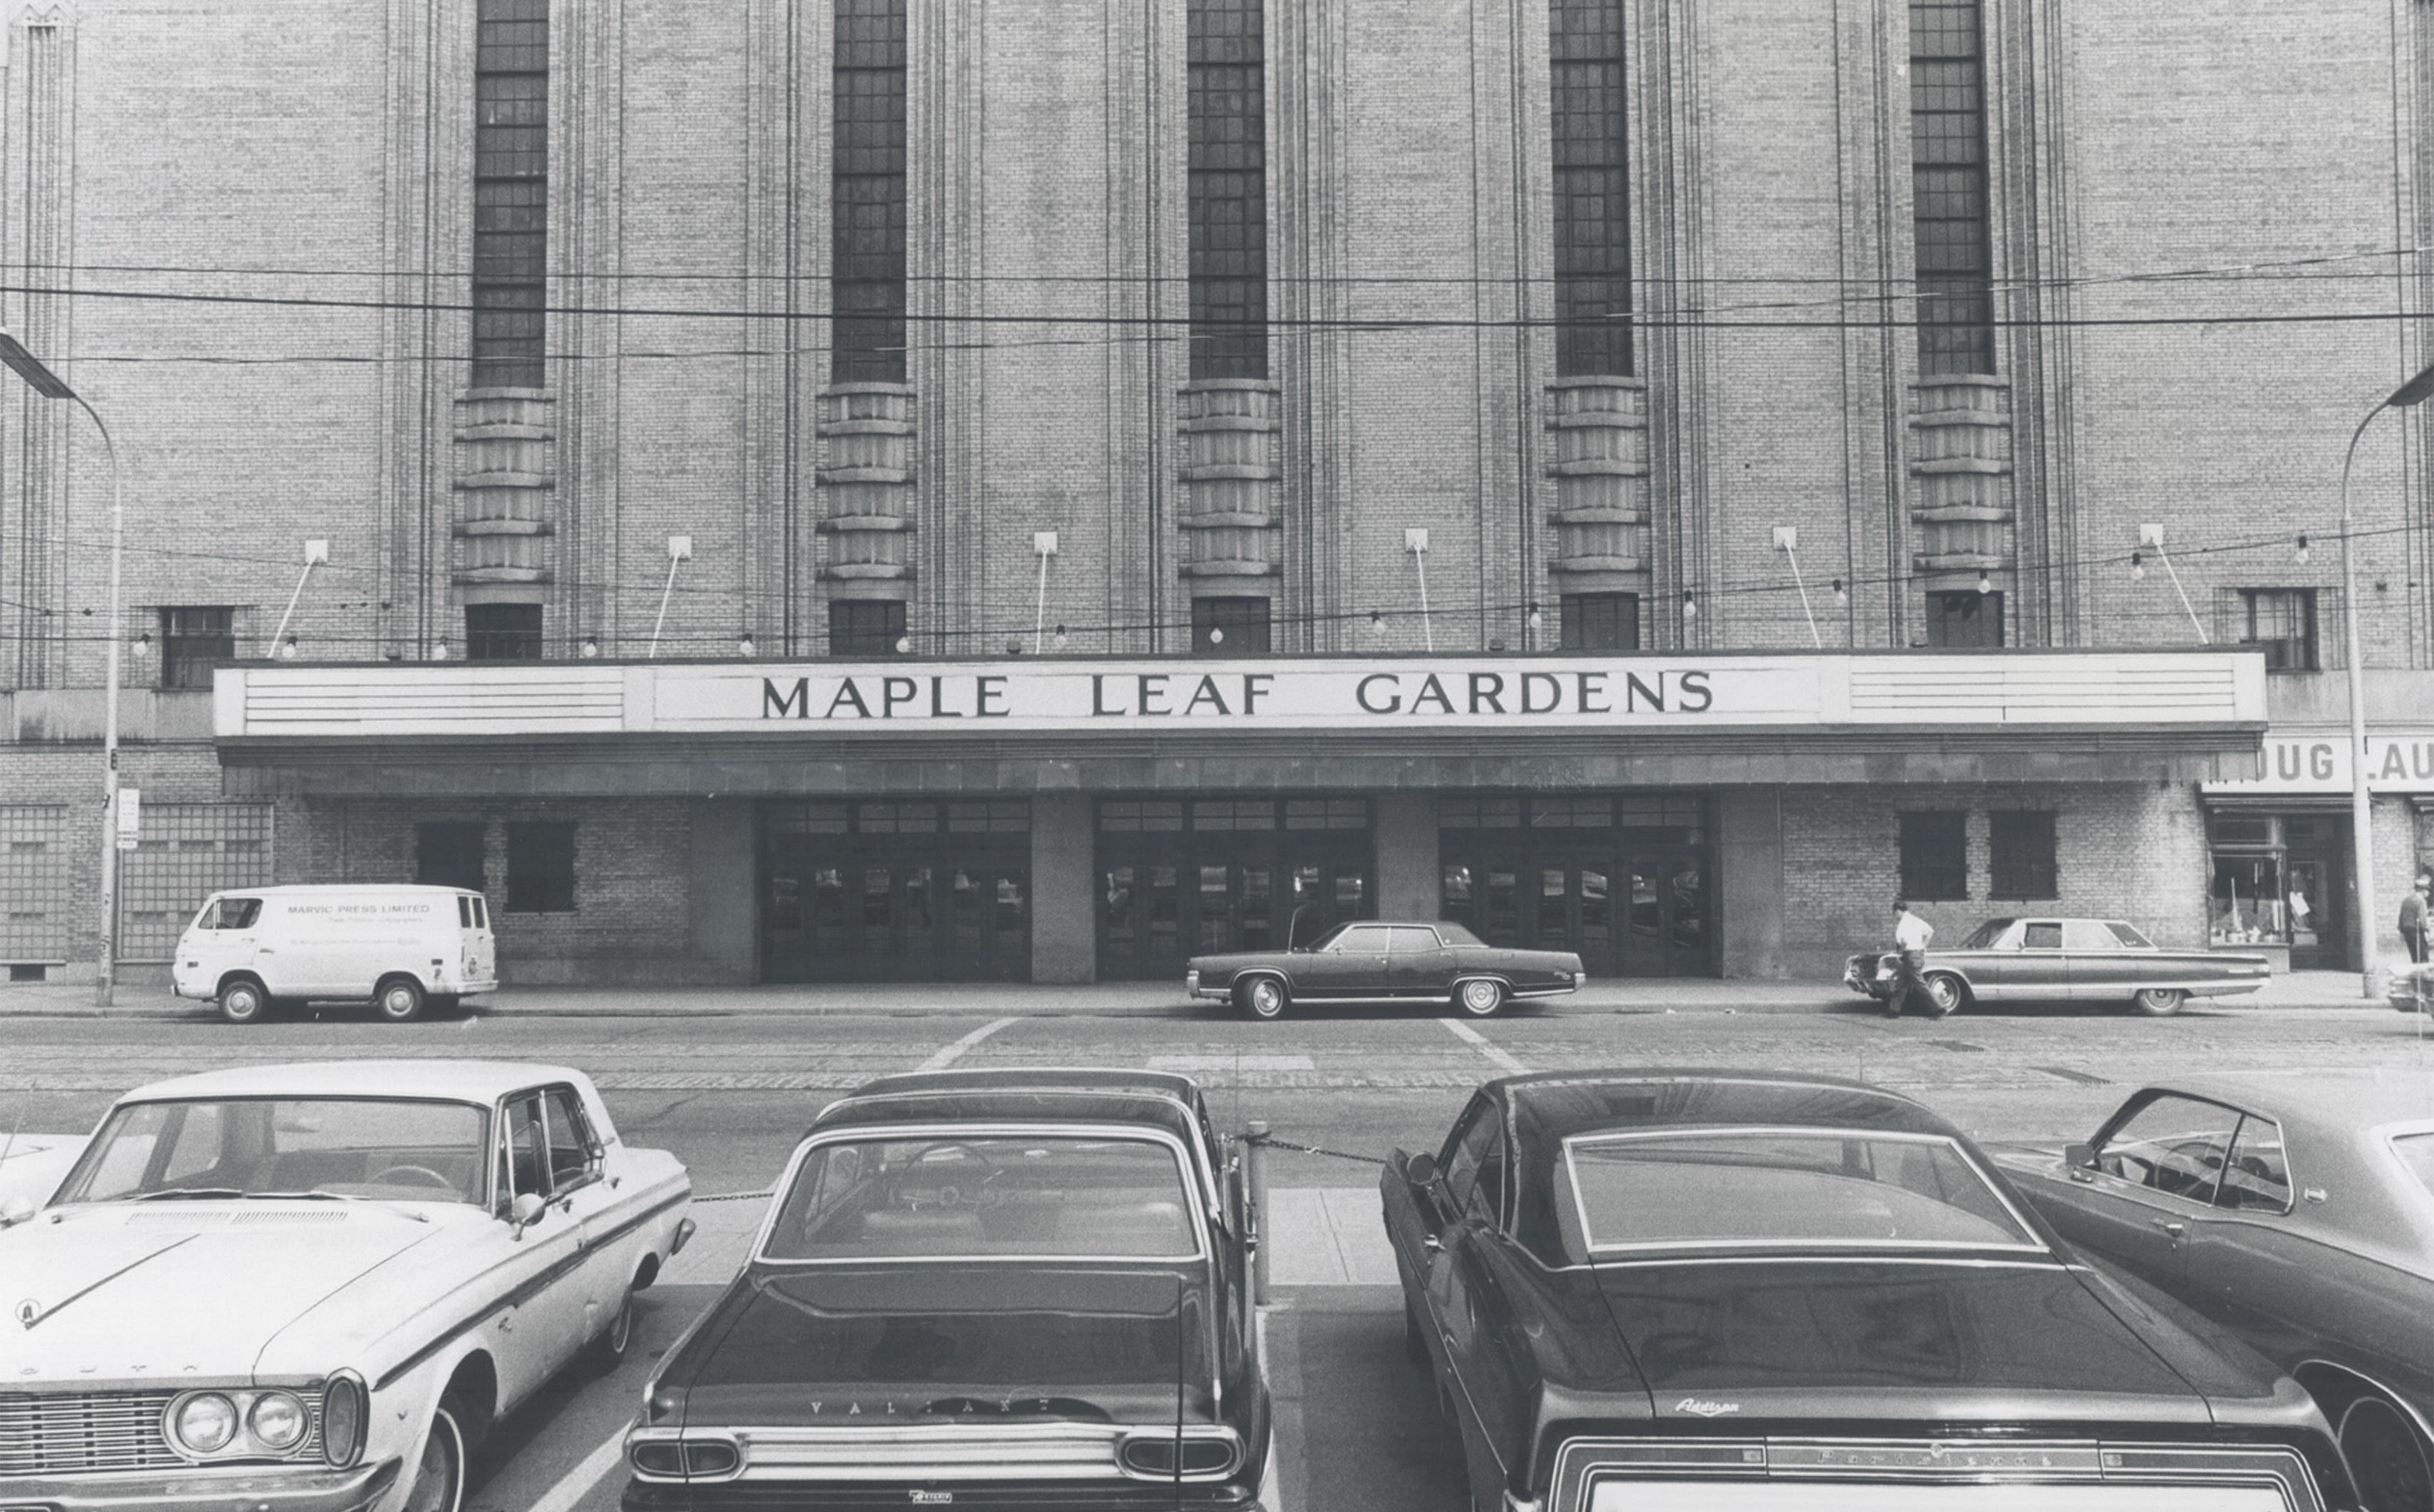 """Exterior of an imposing building with a maruqee that reads """"Maple Leaf Gardens"""". In the foreground are four parked cars."""